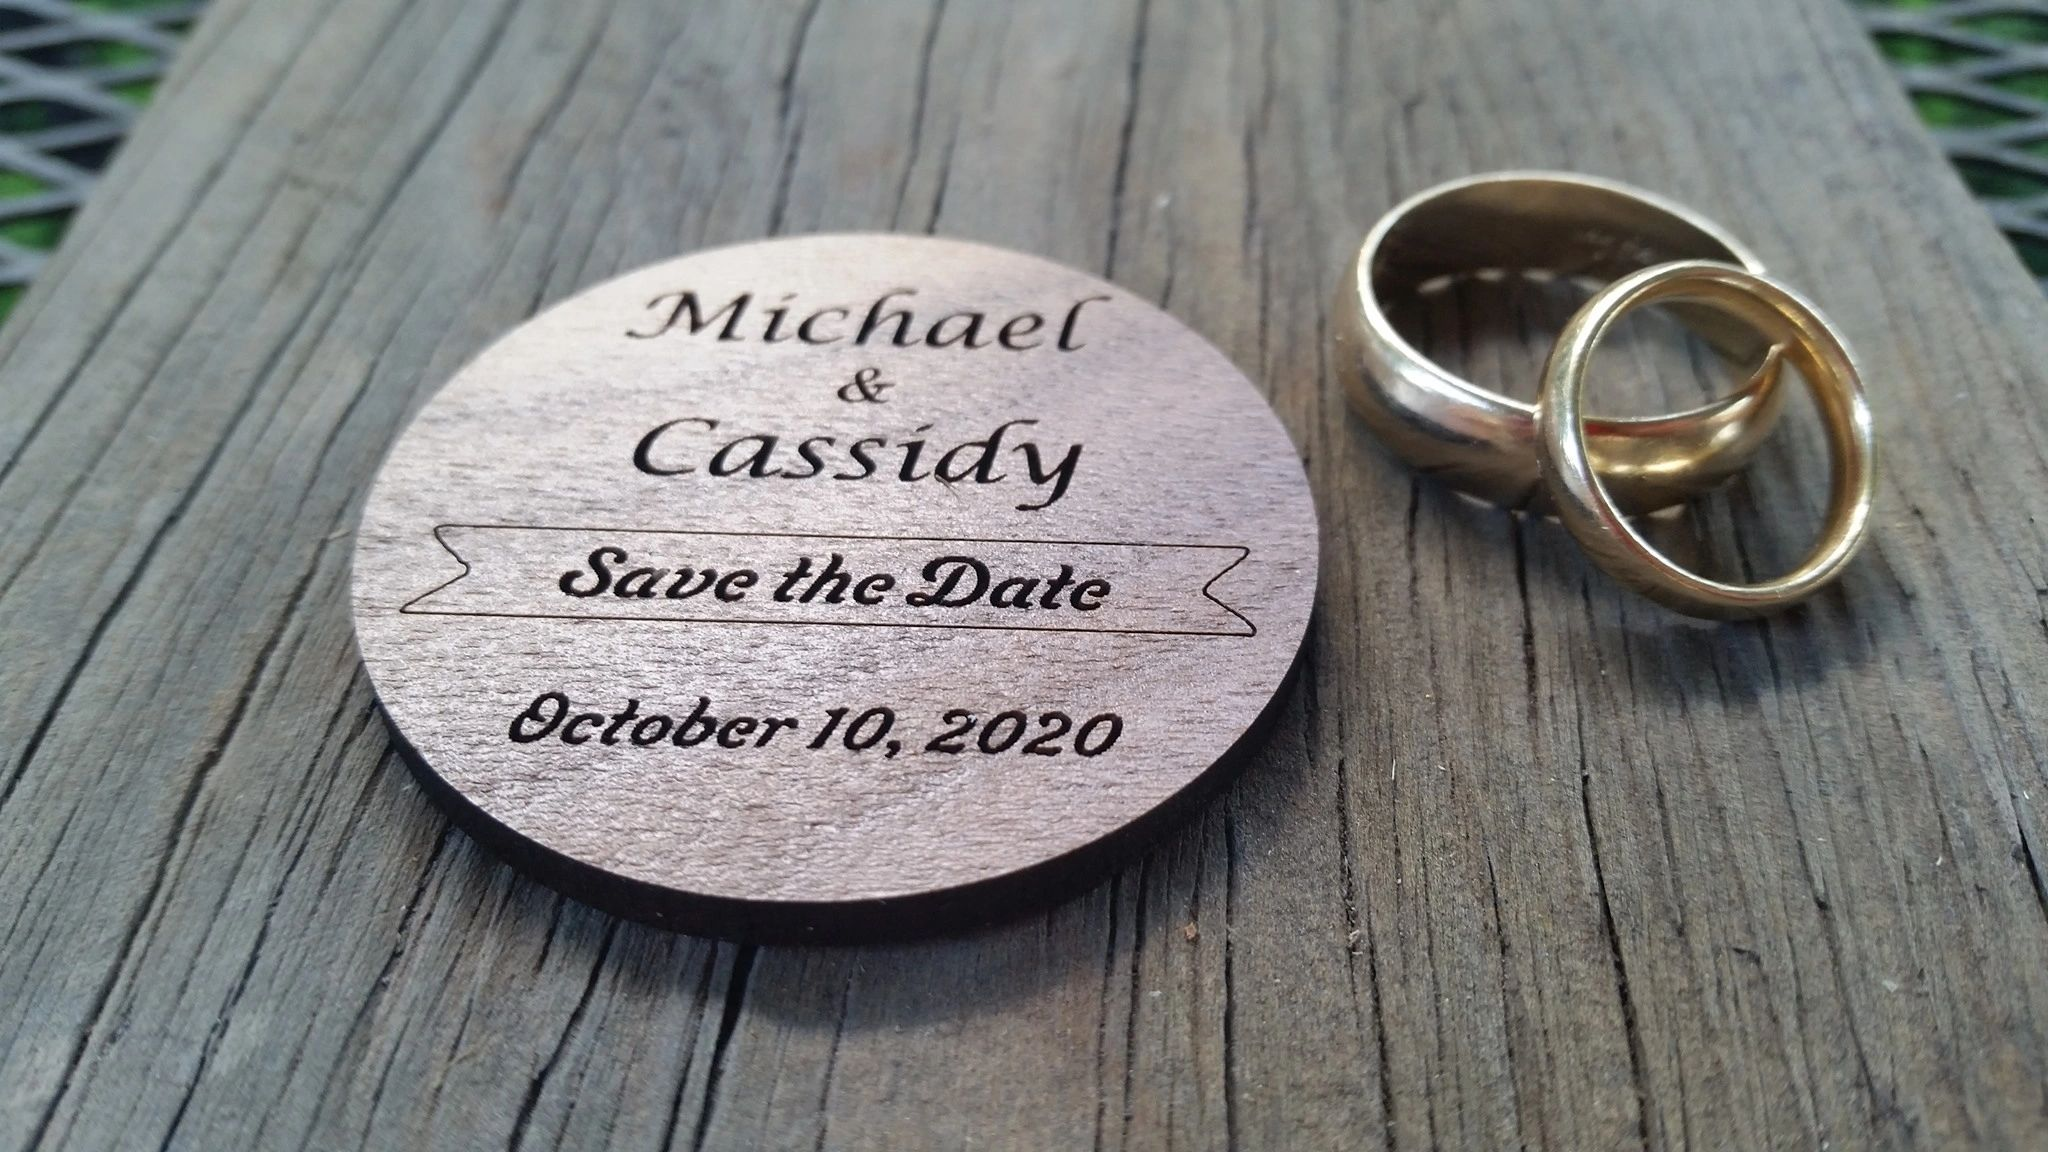 Save the Date wedding announcement tags. Professional & luxurious shown on Walnut Hardwood.